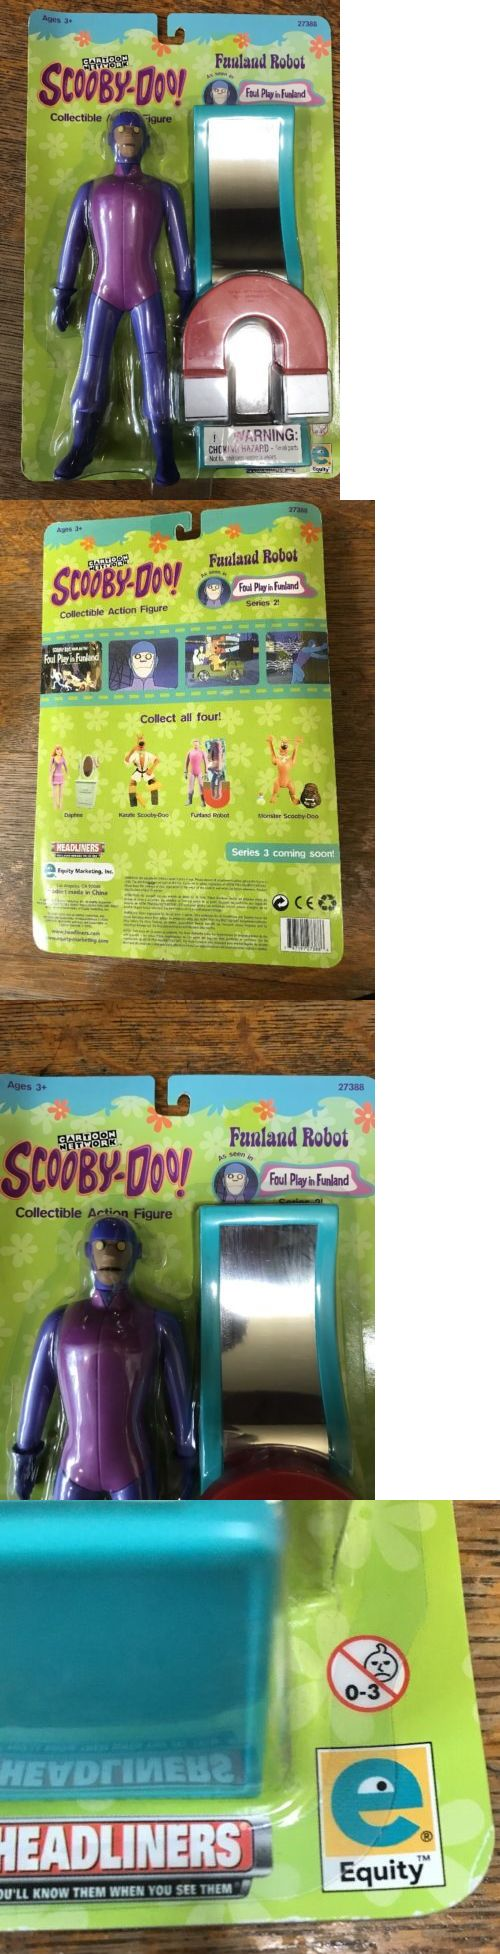 Scooby-Doo 11747: New In Box Scooby Doo Runaway Charlie Funland Robot 8 , 2000 Equity Hanna Babera -> BUY IT NOW ONLY: $60 on eBay!